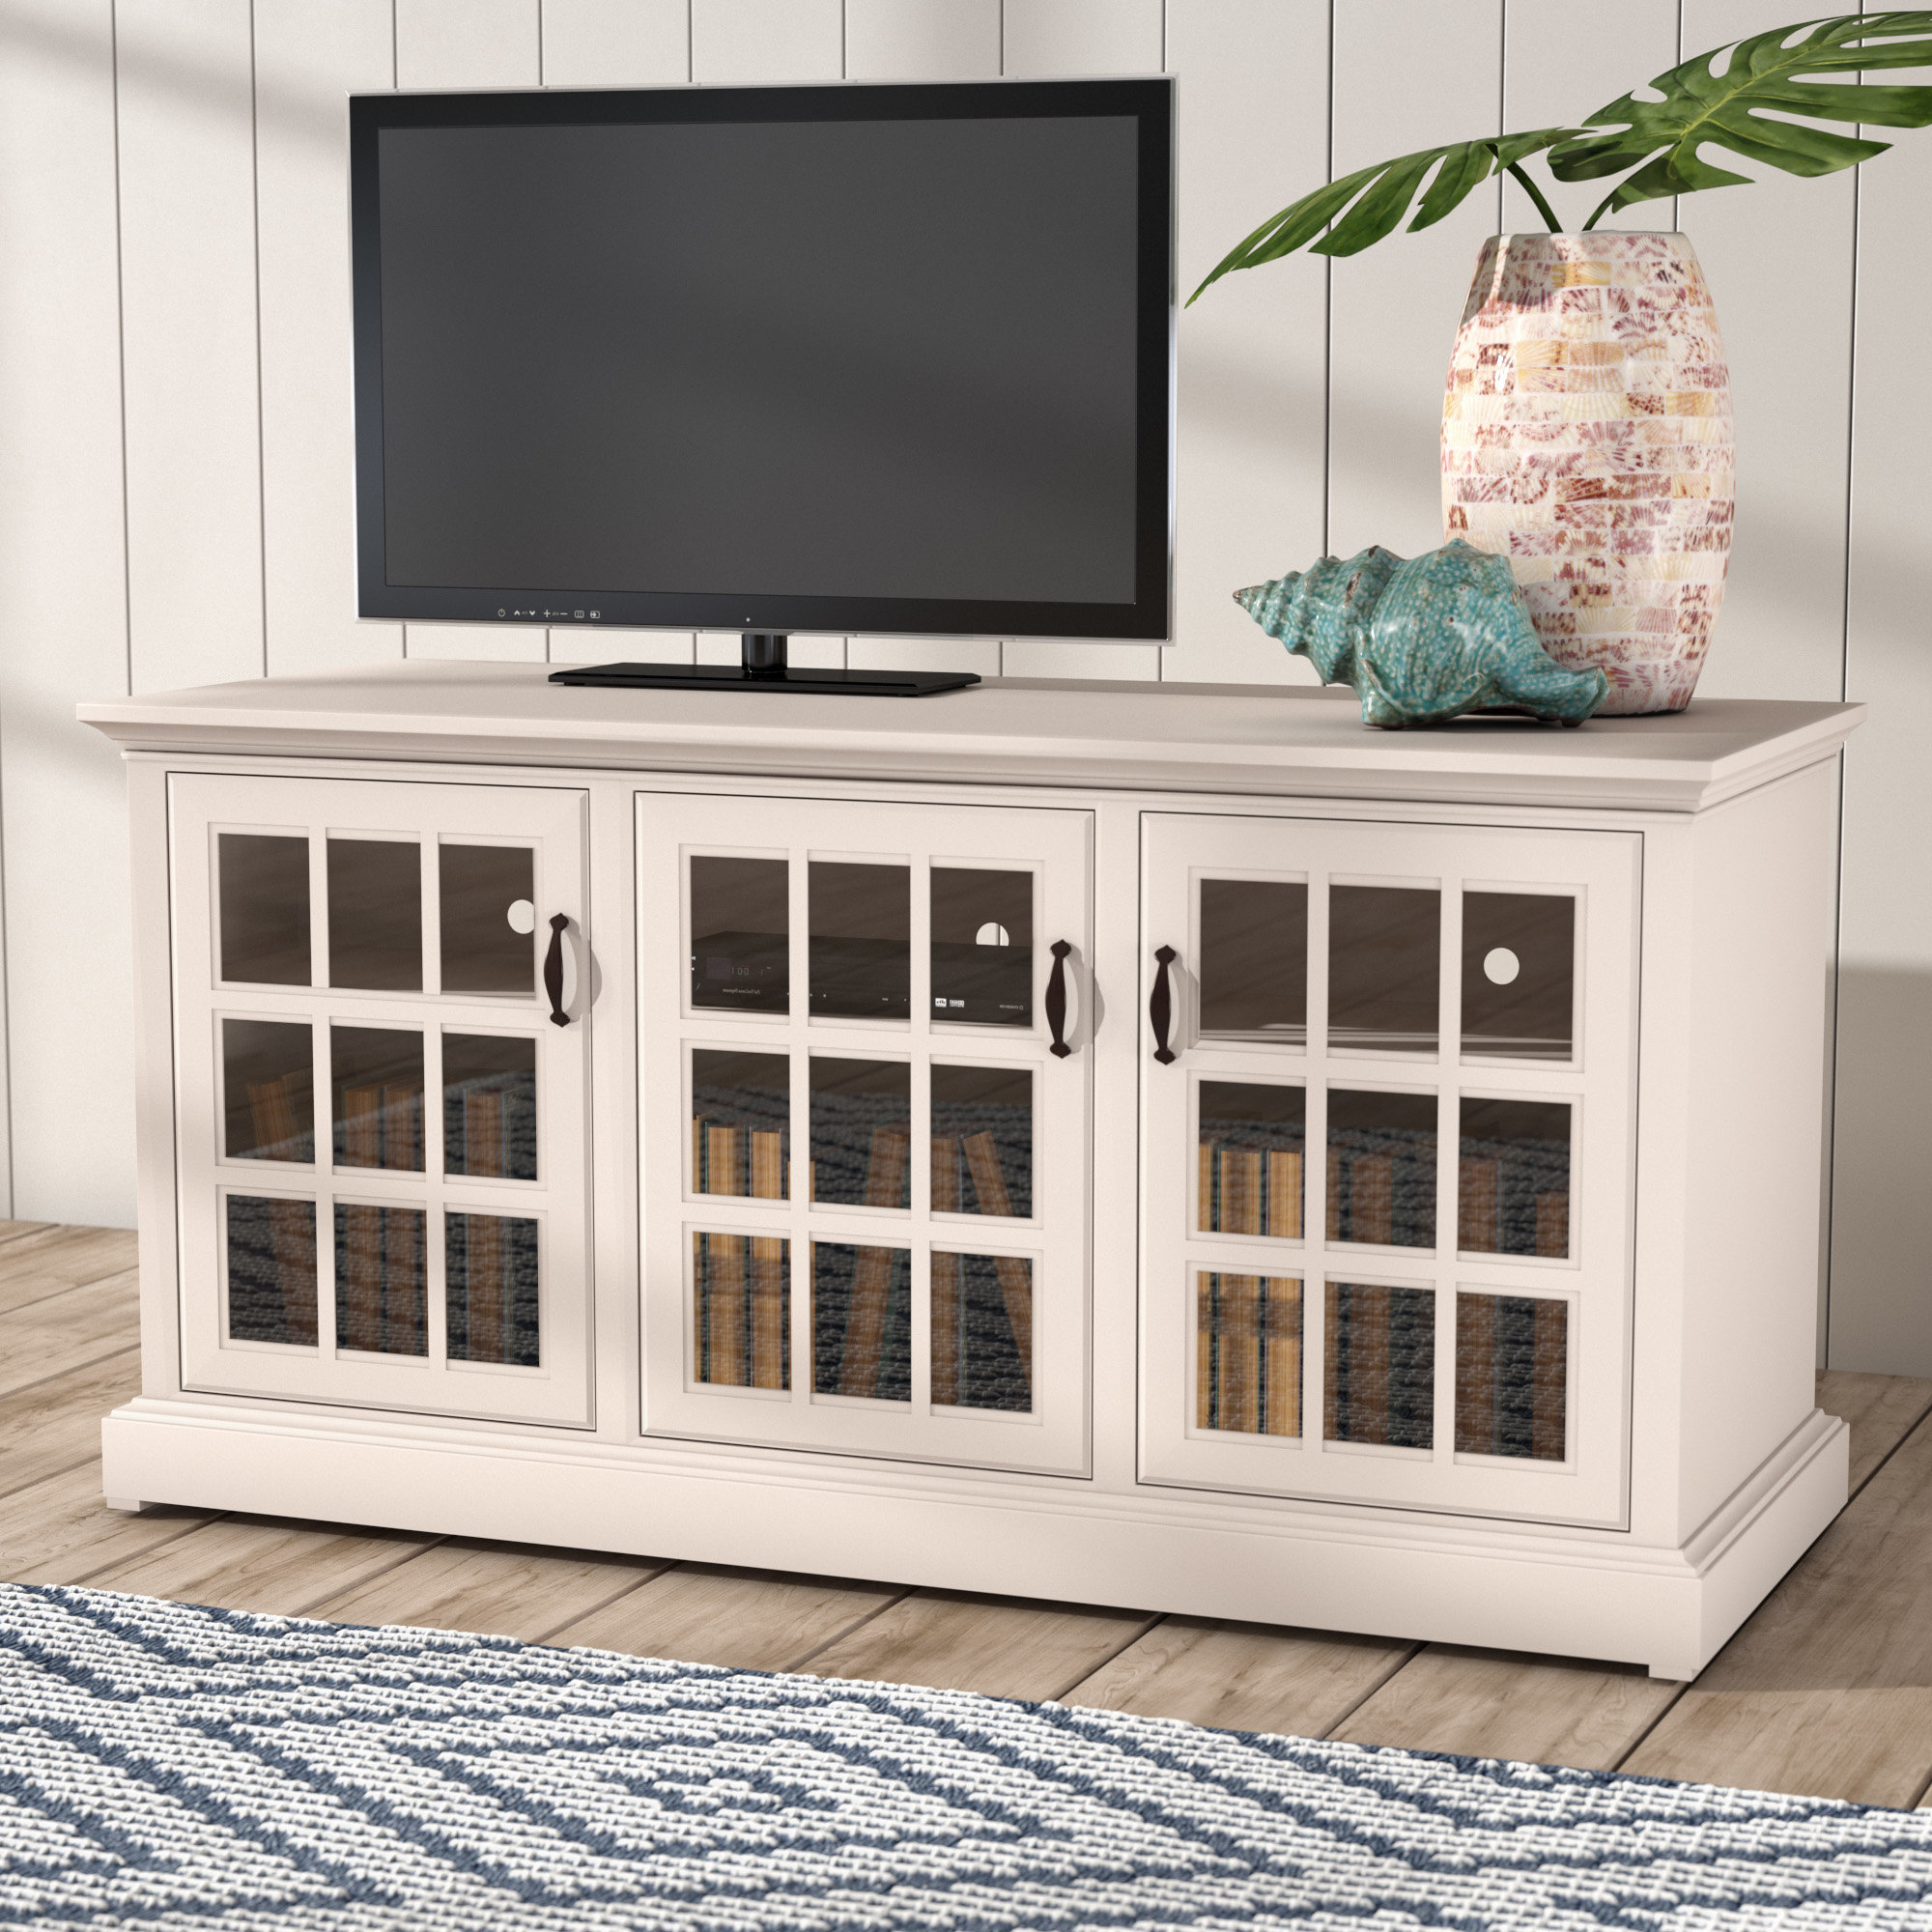 "Beachcrest Home Dartmouth Tv Stand For Tvs Up To 43 Inside Colefax Vintage Tv Stands For Tvs Up To 78"" (View 7 of 20)"